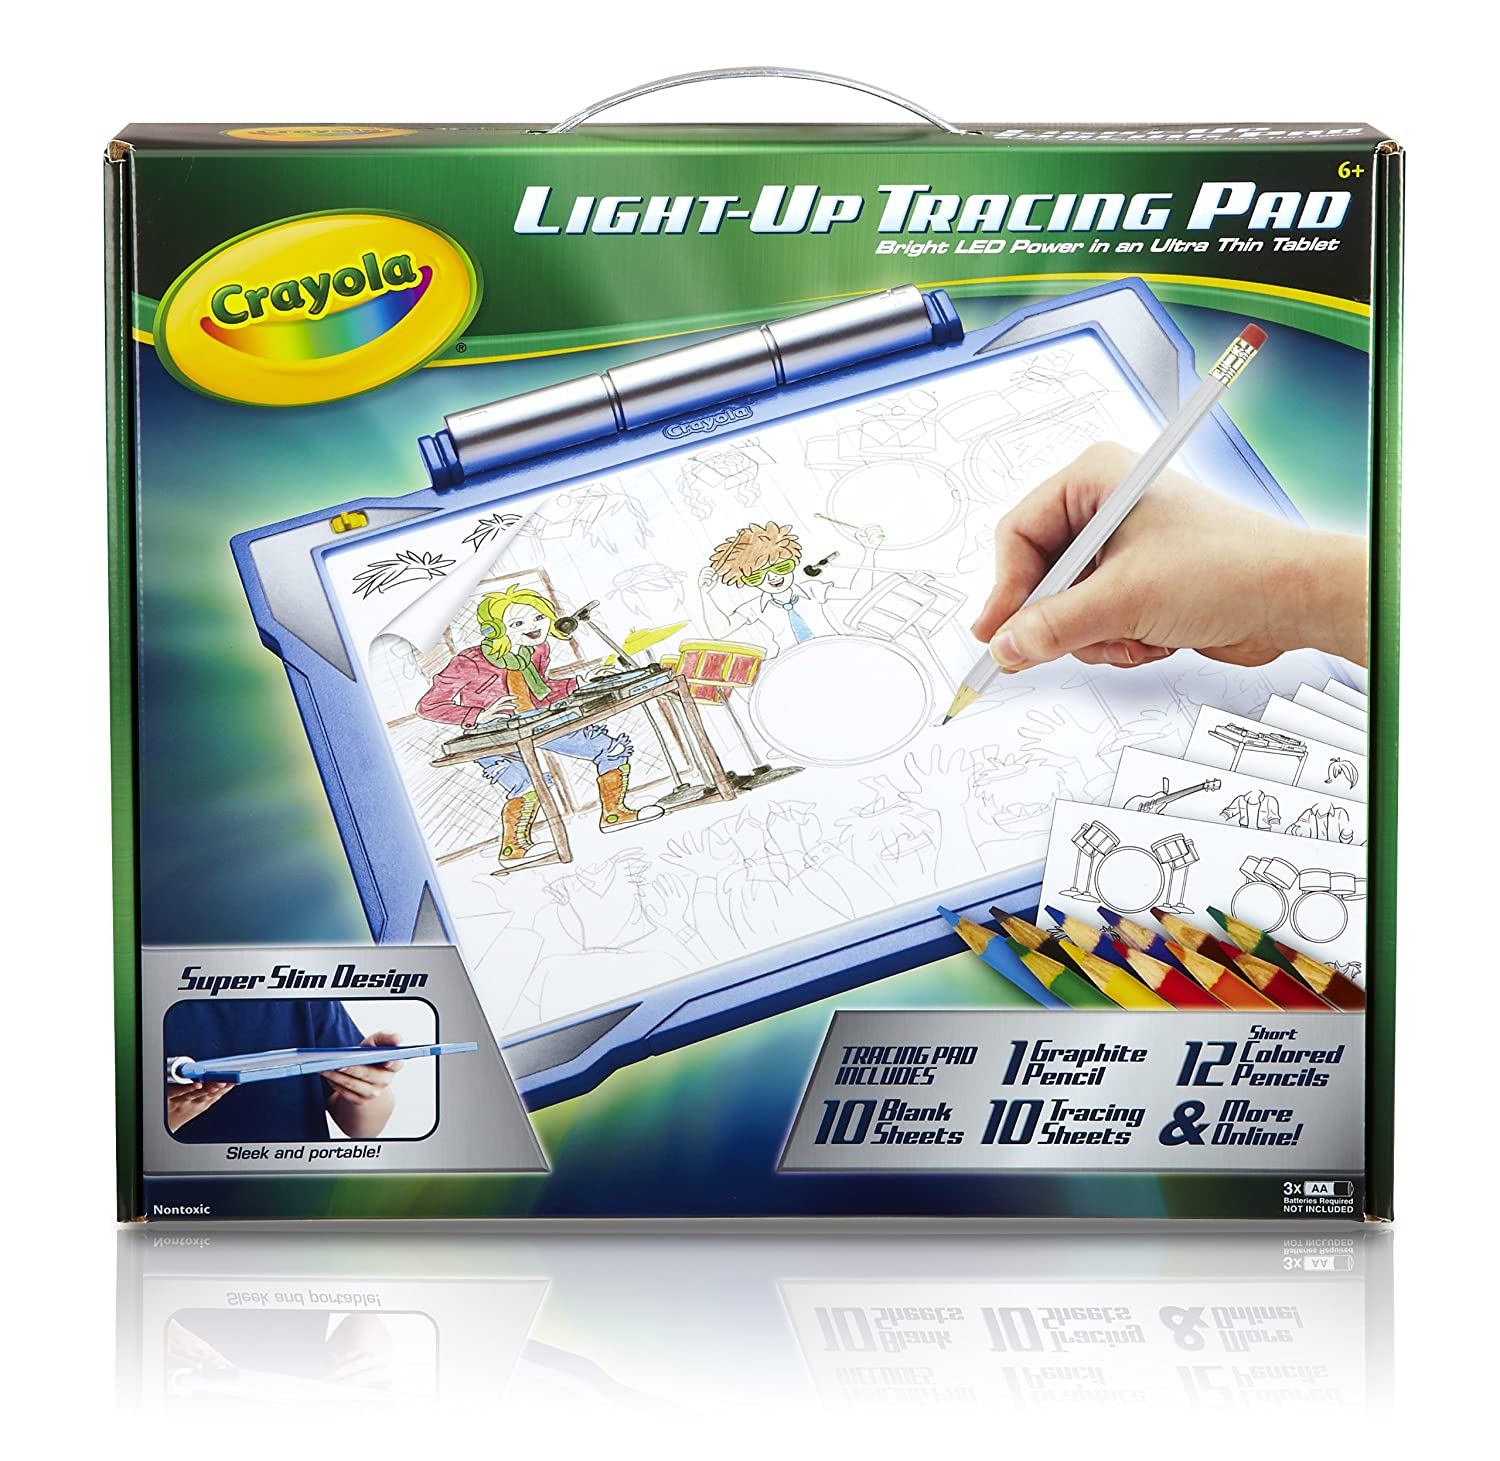 Crayola Light Up Tracing Pad Review